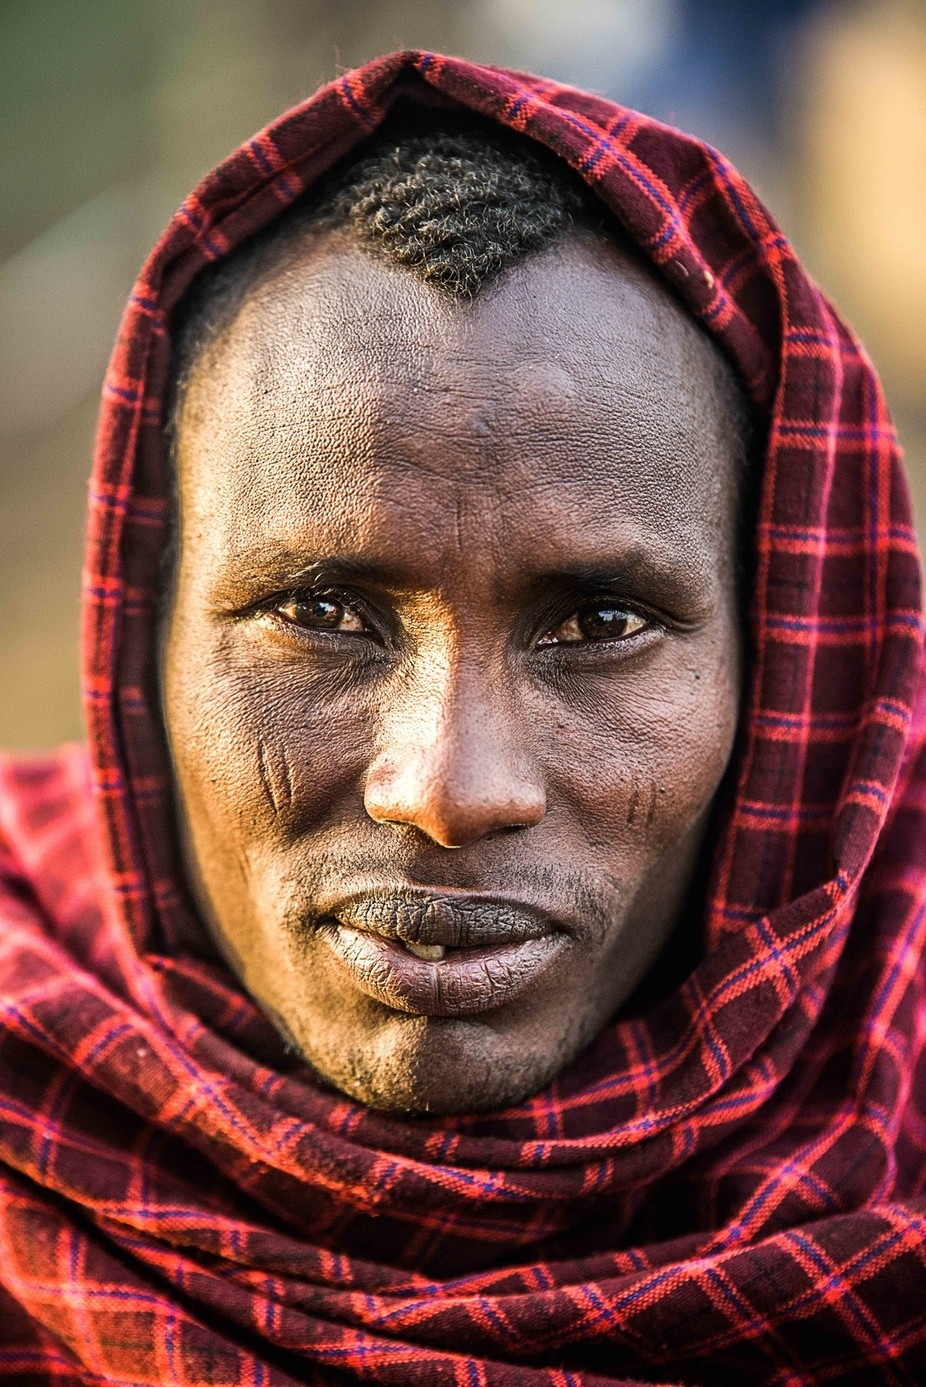 Masai by giovannivolpe - Explore Africa Photo Contest